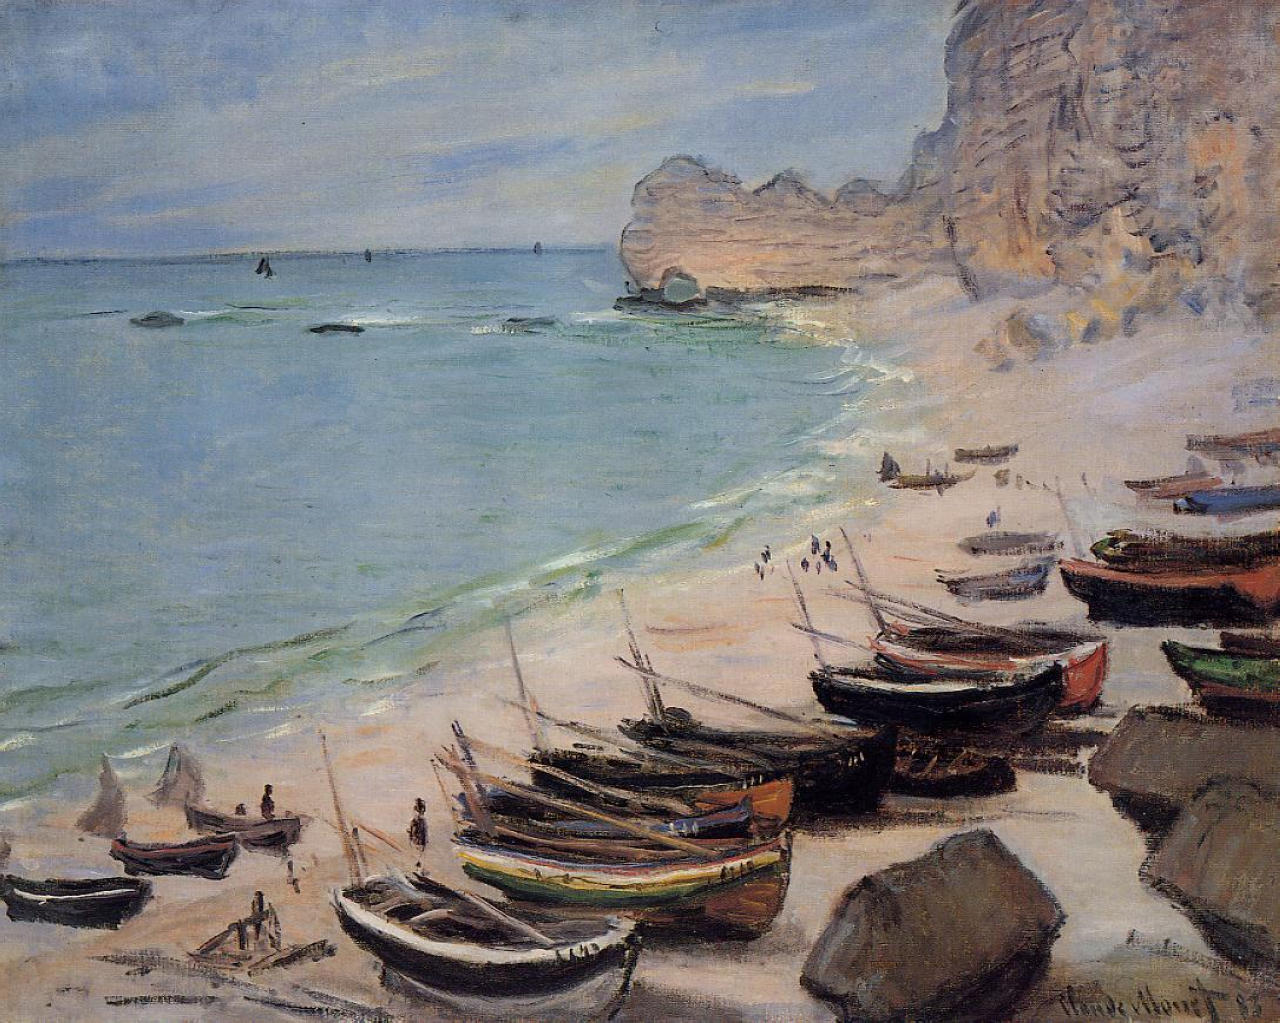 Monet-boats-on-the-beach-at-etretat